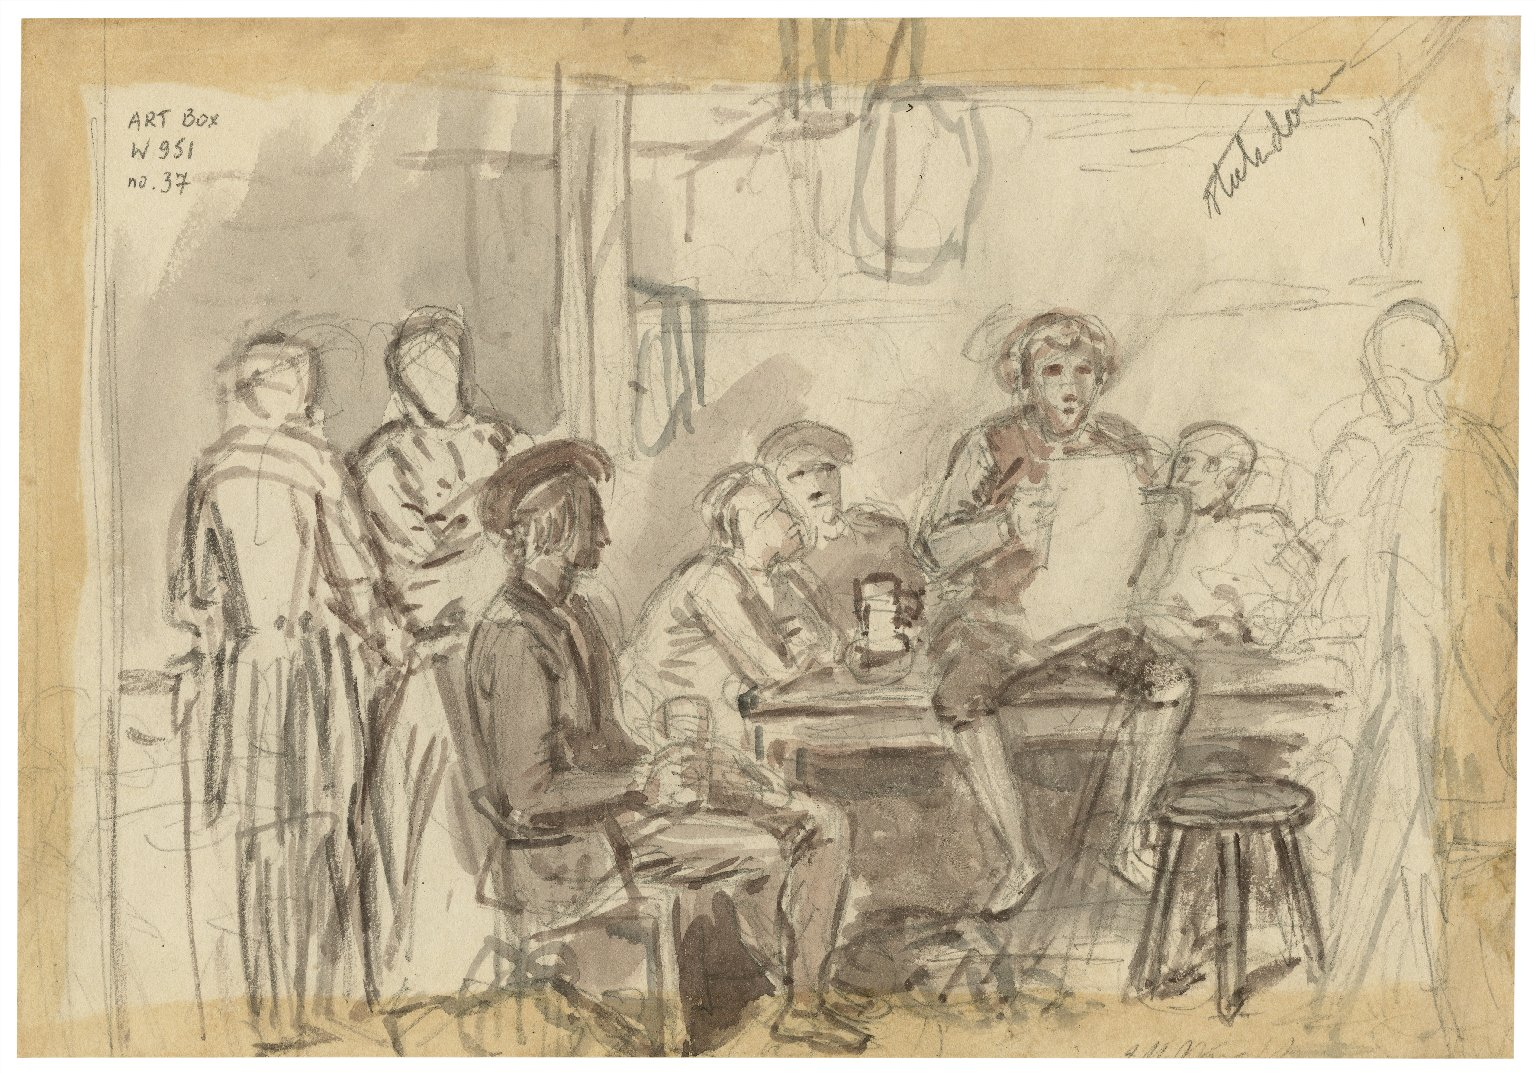 [Illustrations to Shakespeare - group scenes - unfinished] [graphic] / J.M. Wright.